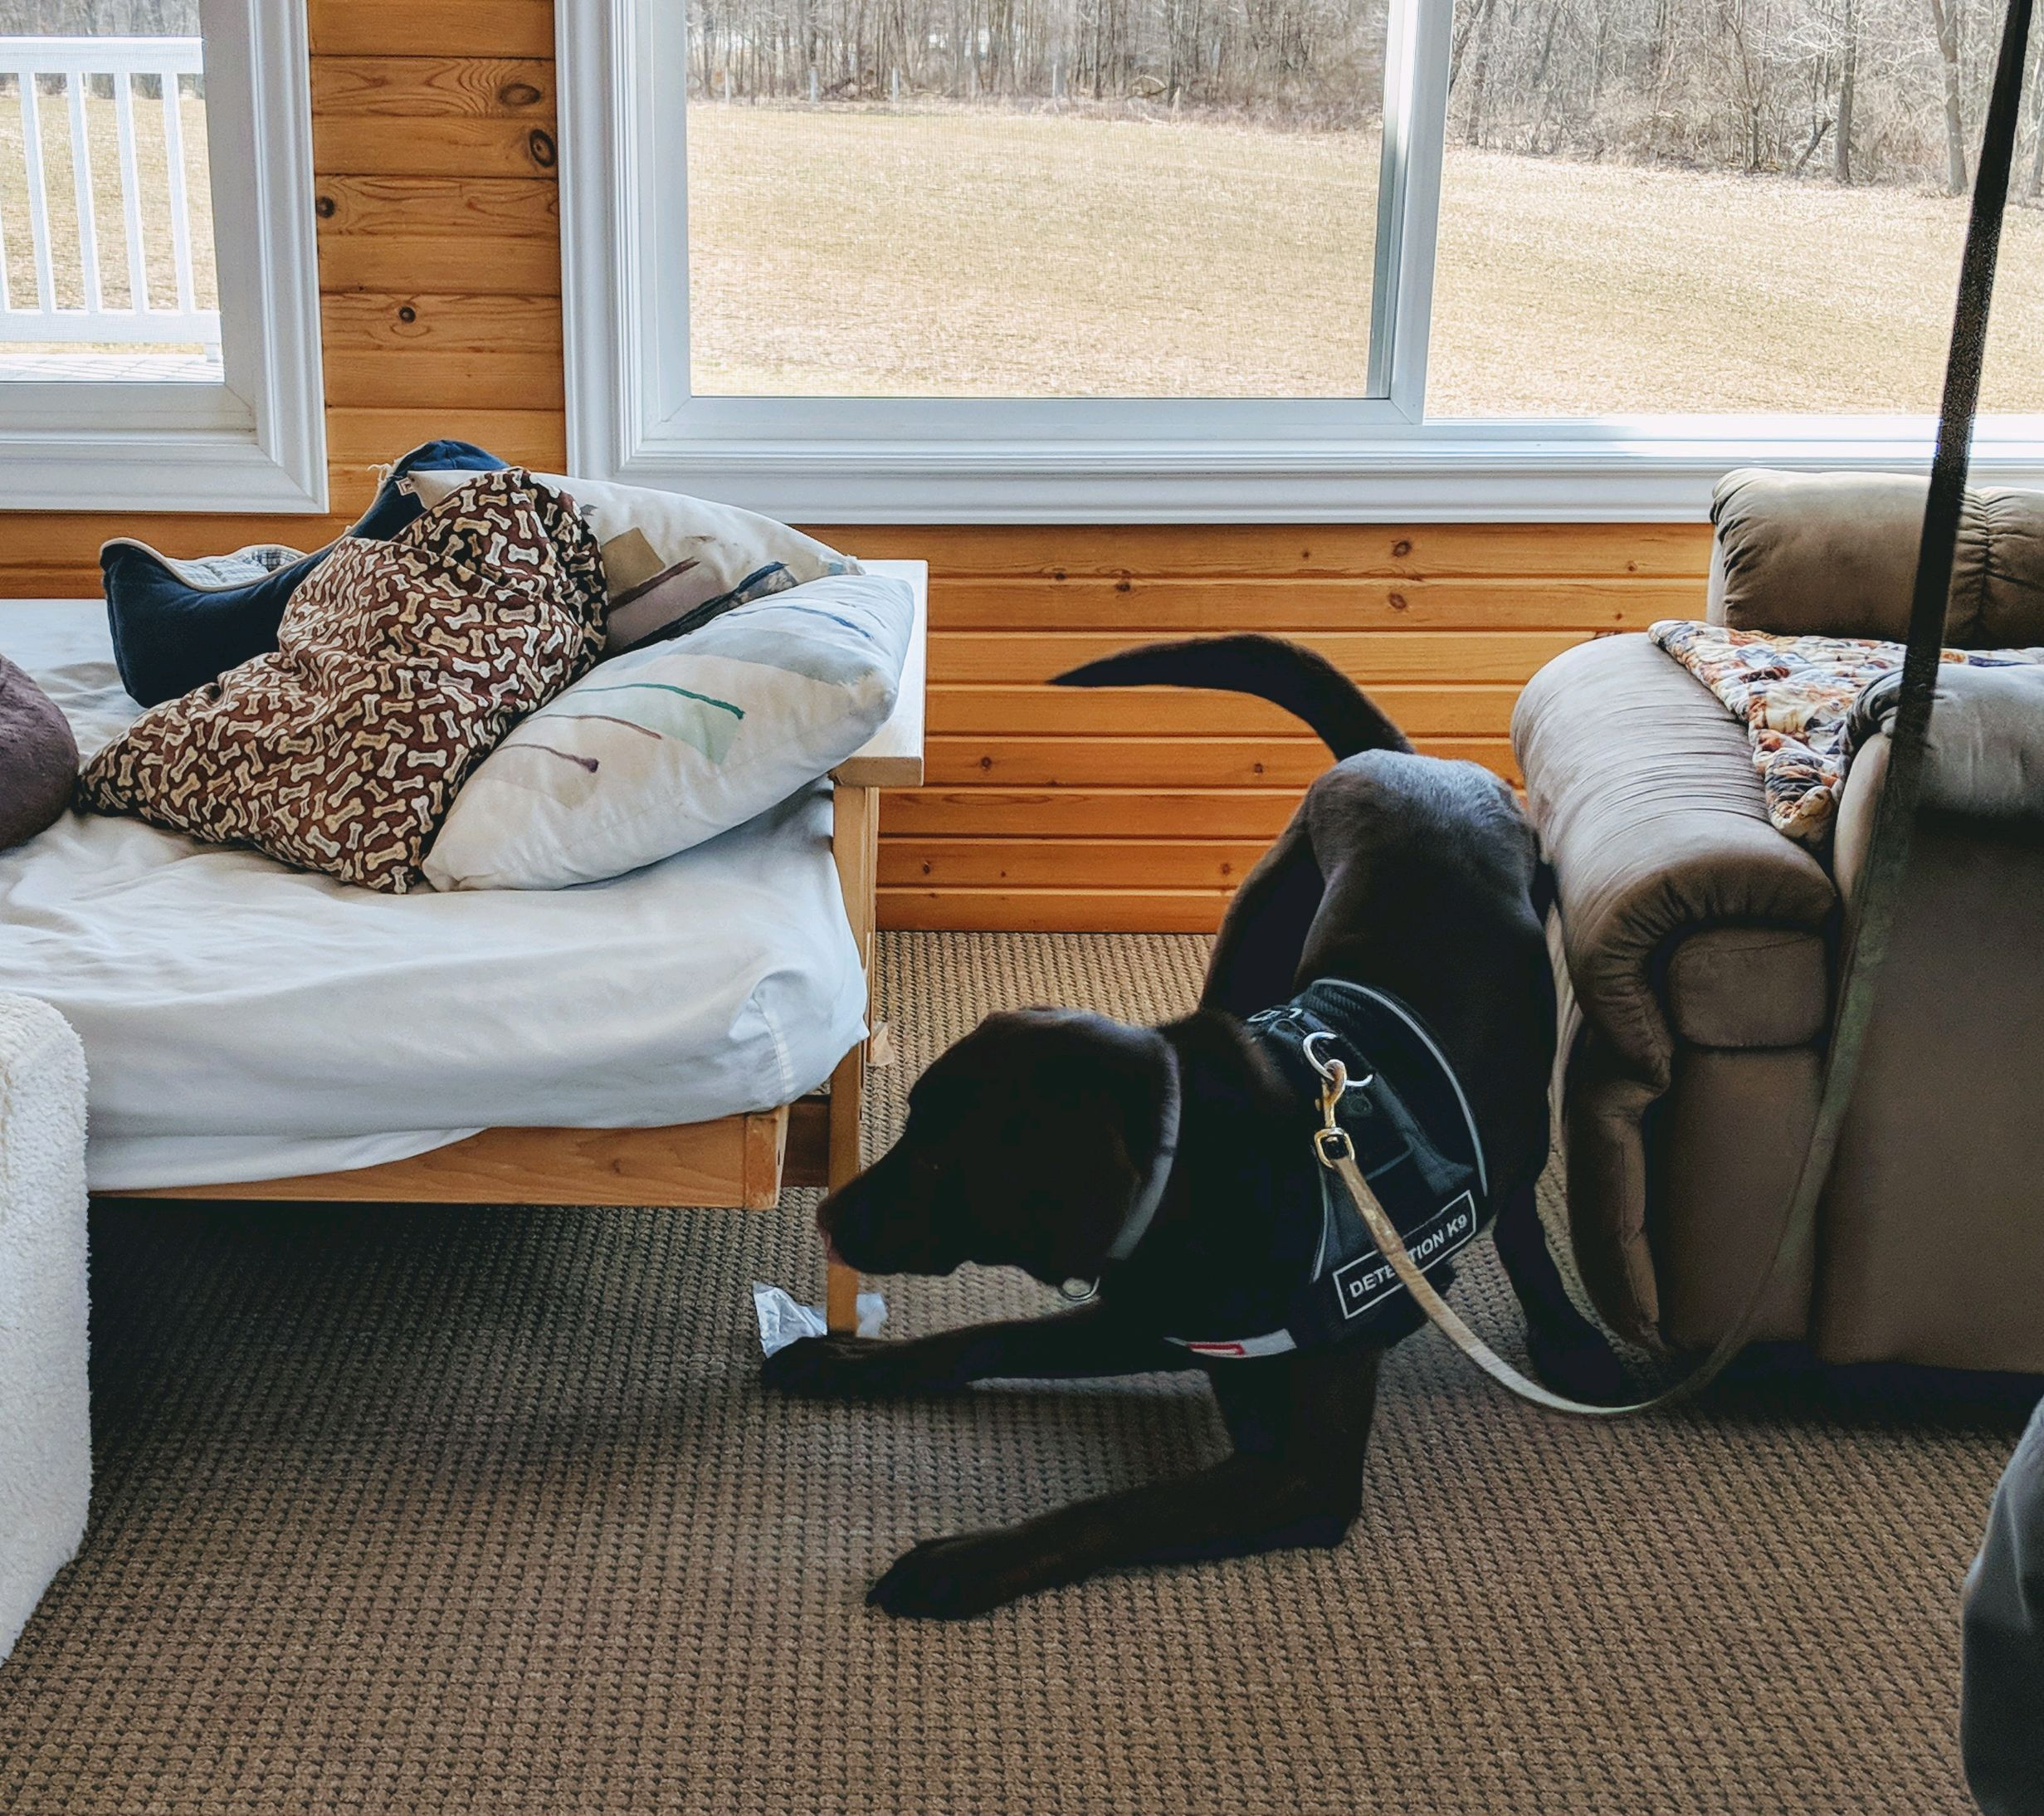 About Us — K9 Bed Bug Hunter